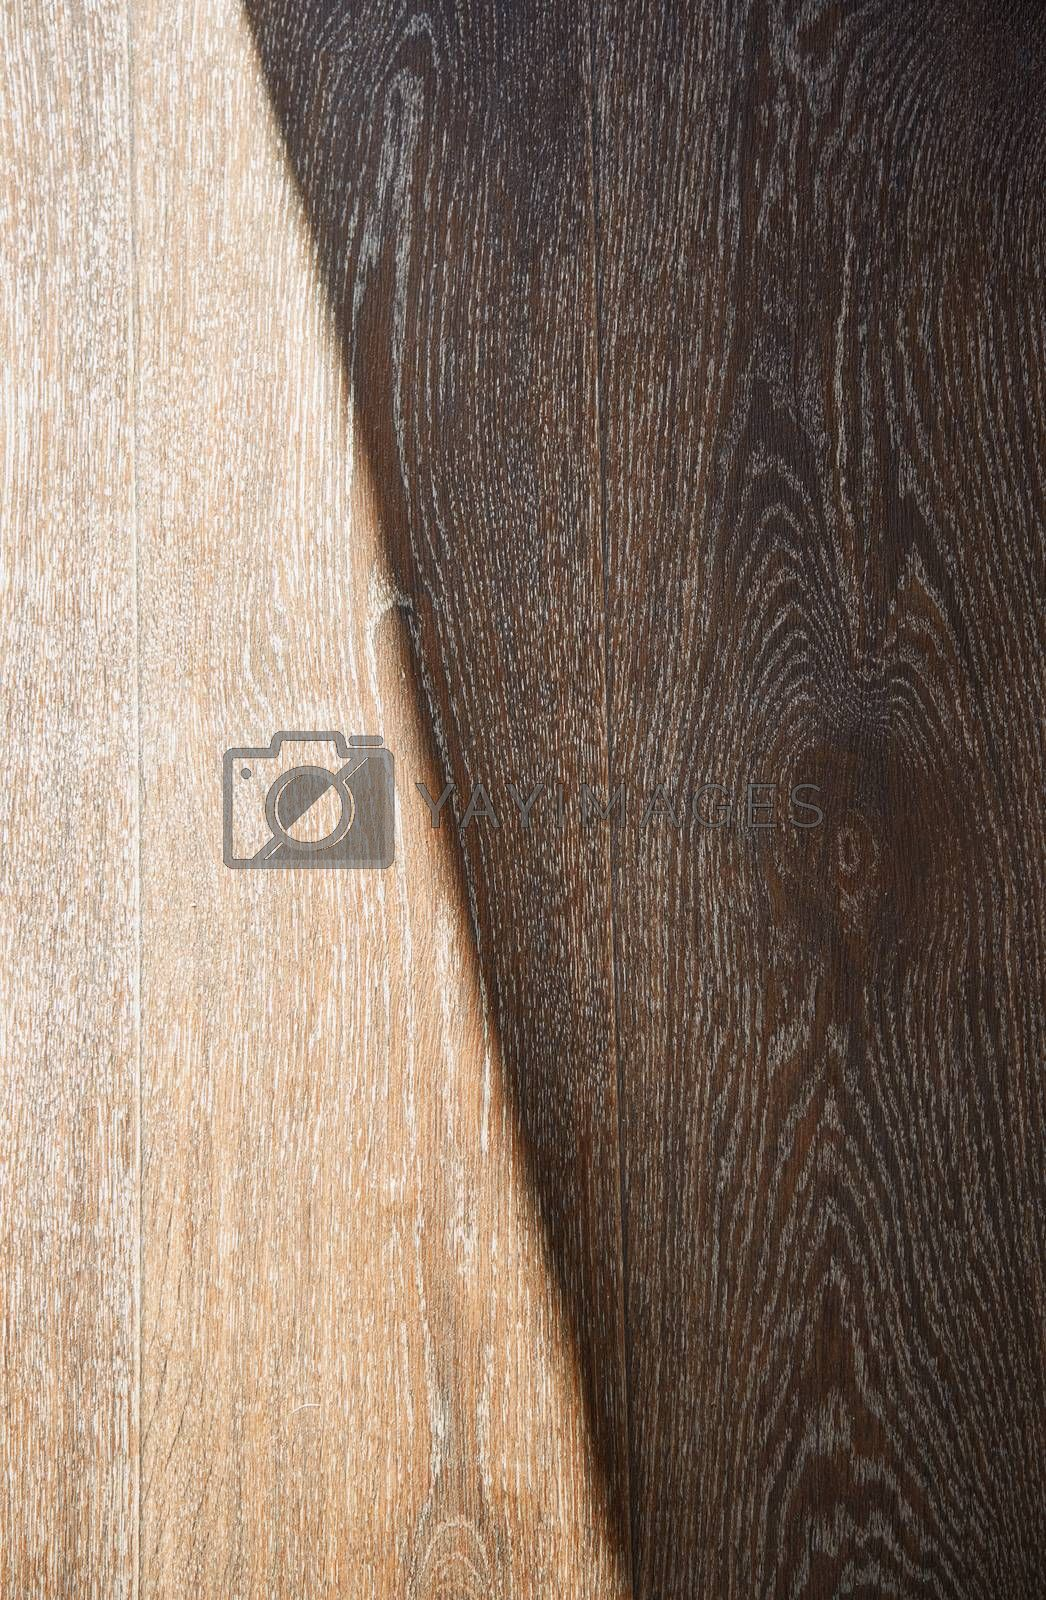 Wooden texture with sunlight and shade